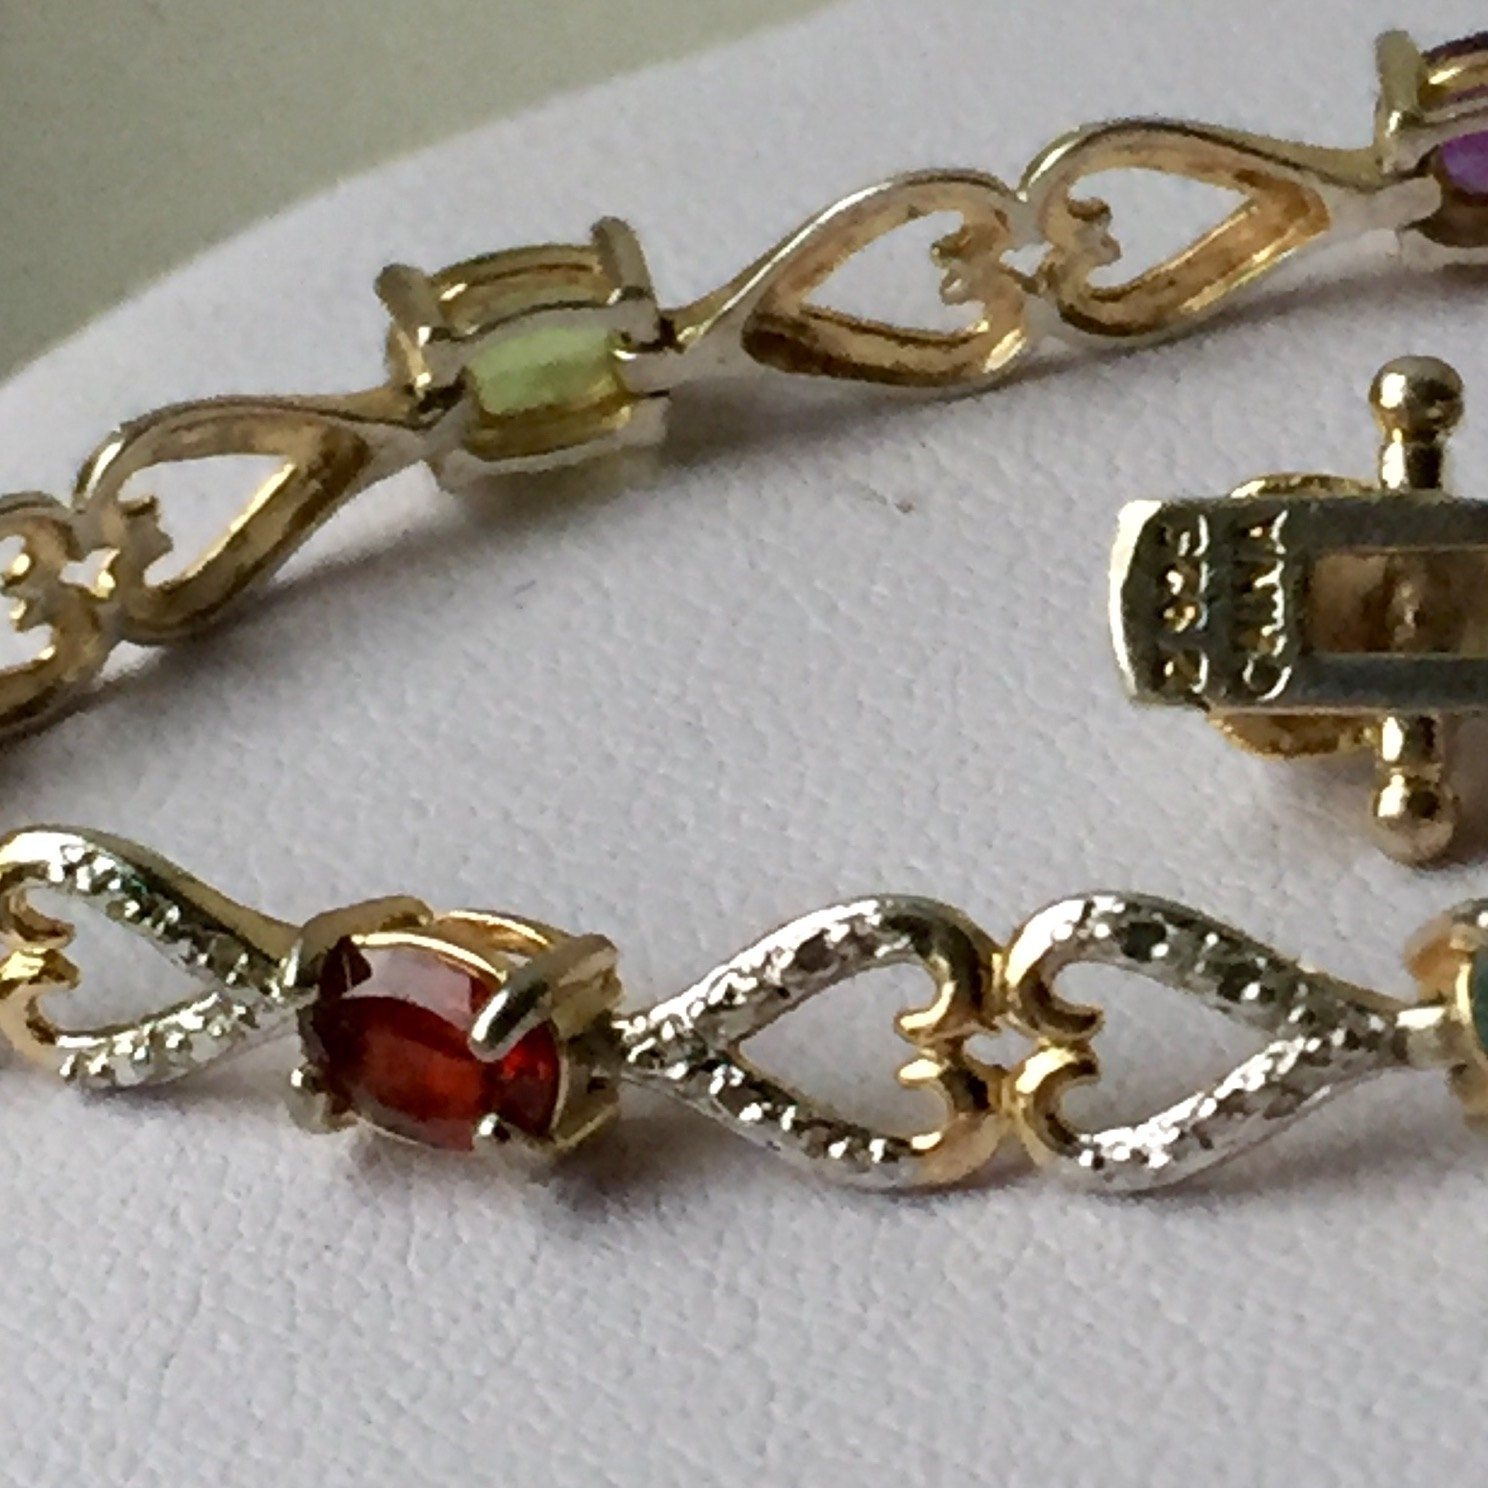 Vintage 925 Sterling Silver gold plate Diamond Garnet Citrine Peridot Aquamarine Amethyst hearts Tennis link chain bracelet 7g inches